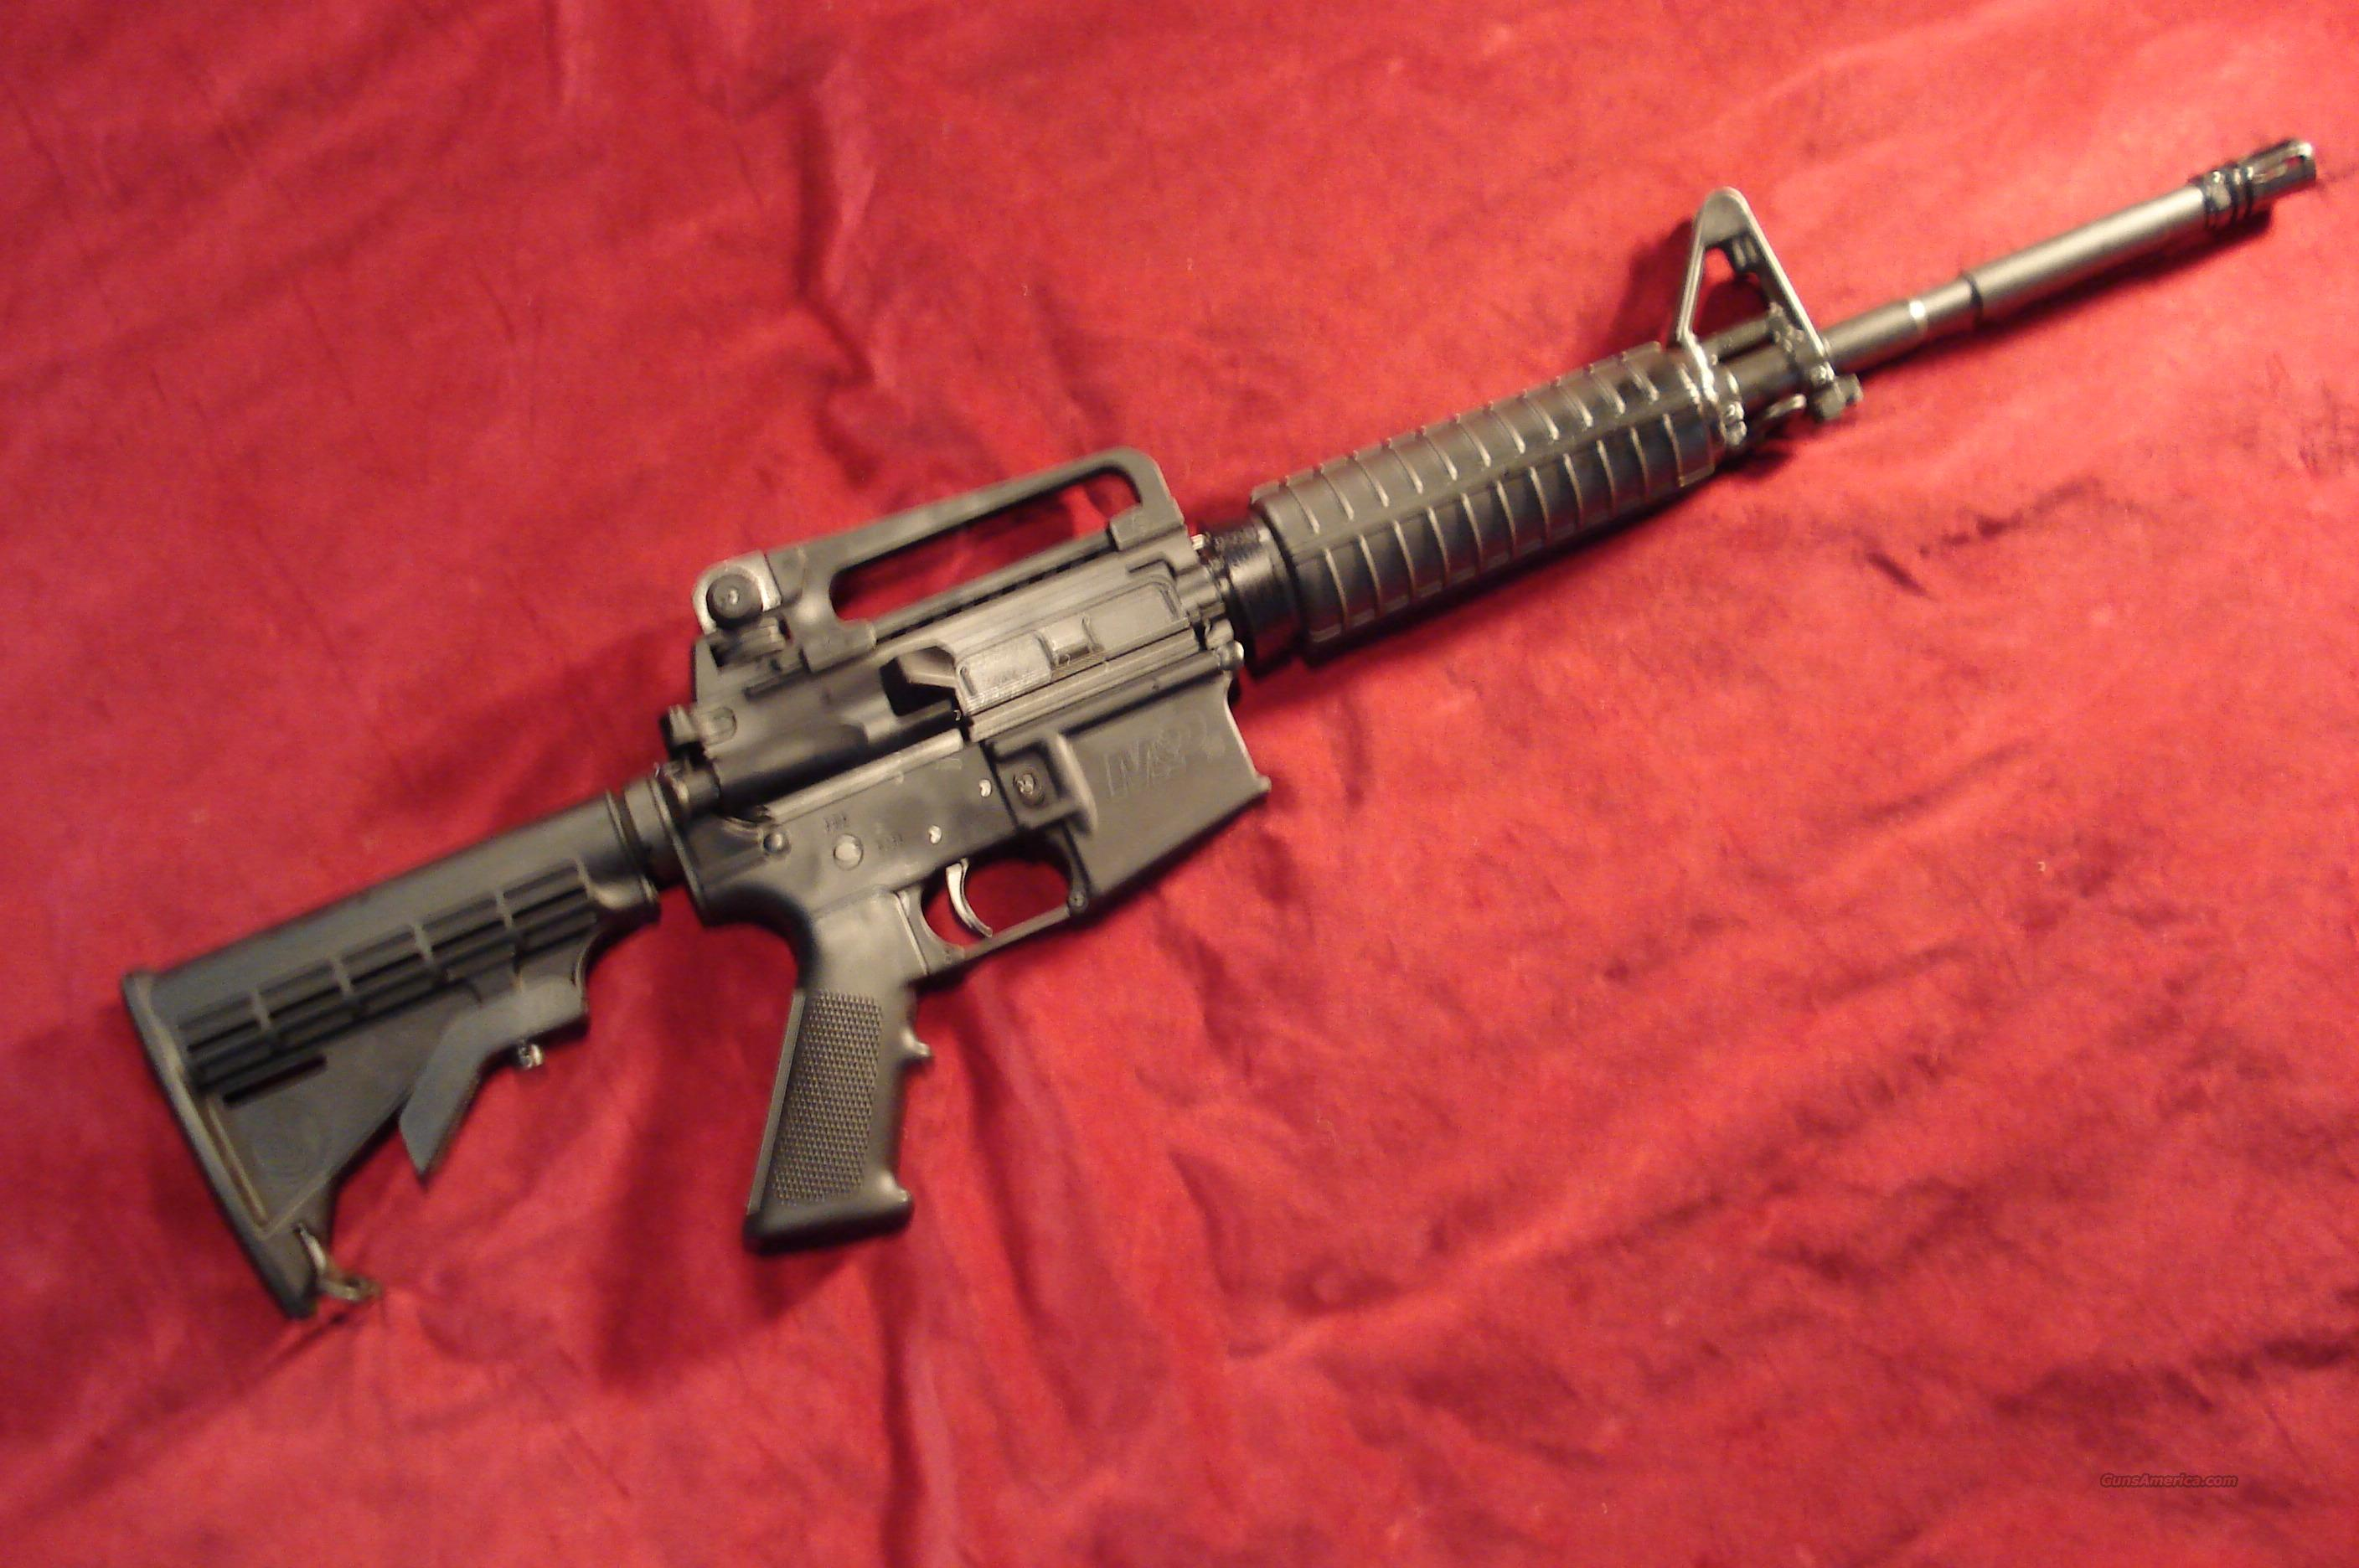 SMITH AND WESSON M&P 15 M4A3 223CAL. NEW IN THE BOX  Guns > Rifles > AR-15 Rifles - Small Manufacturers > Complete Rifle